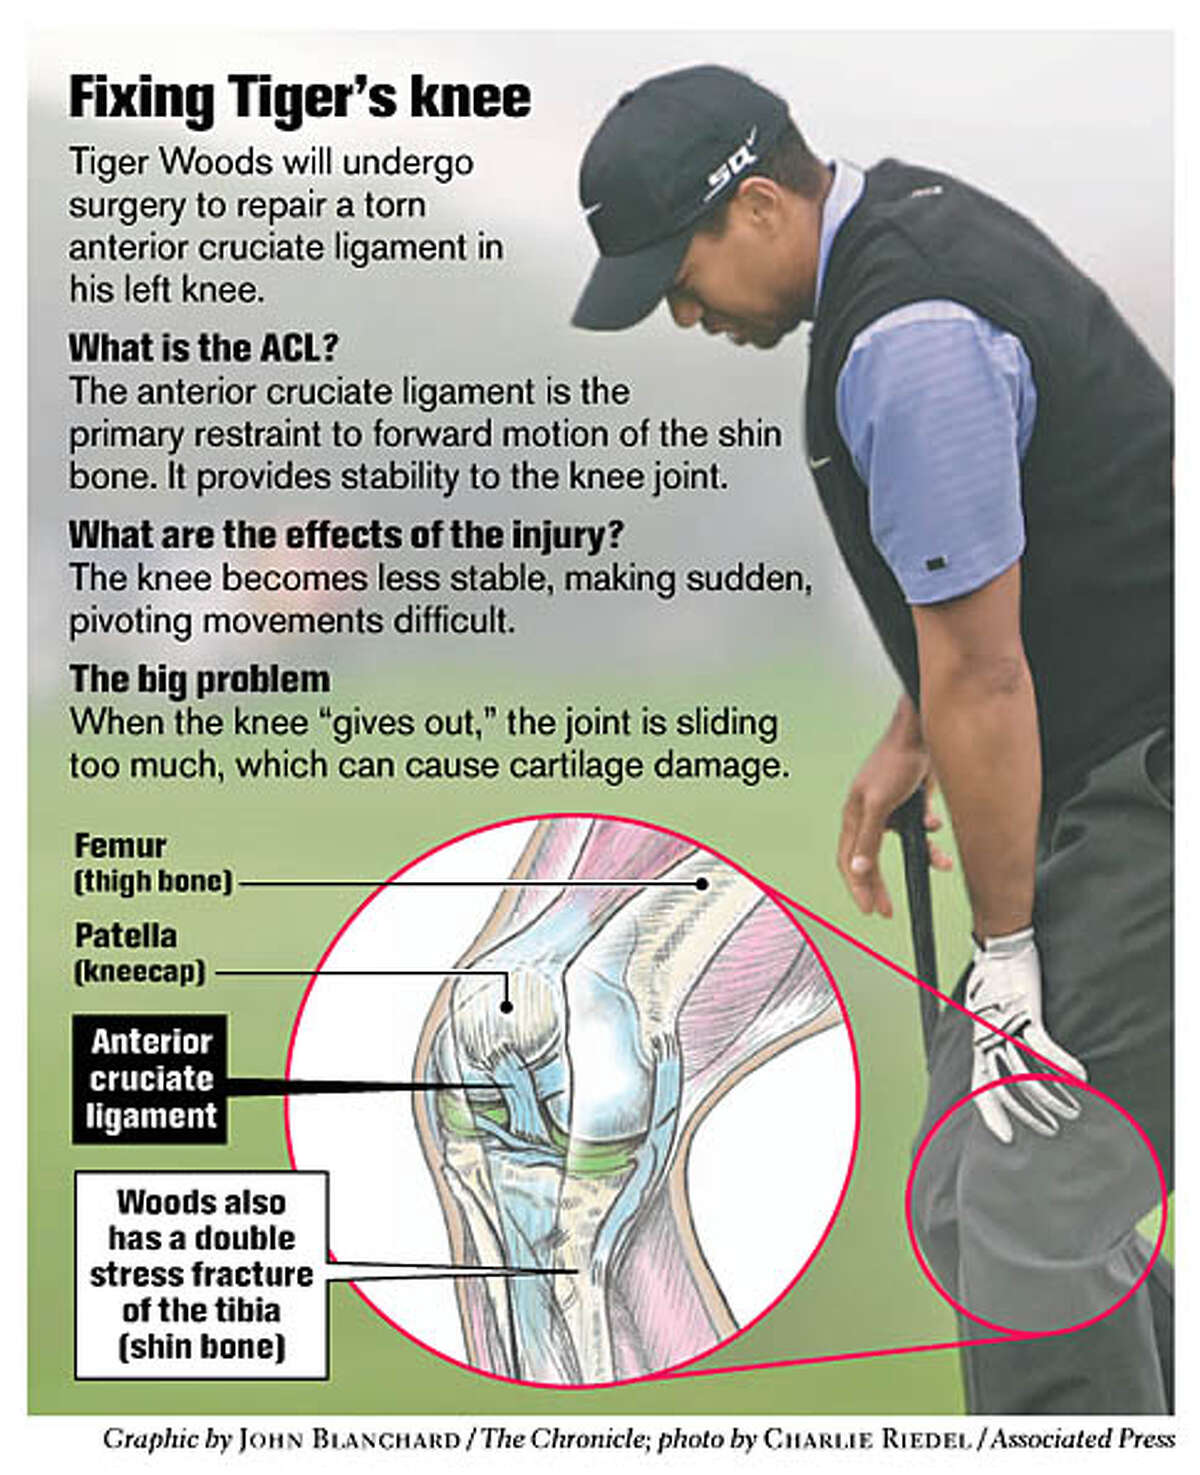 Fixing Tiger's knee. Chronicle graphic by John Blanchard